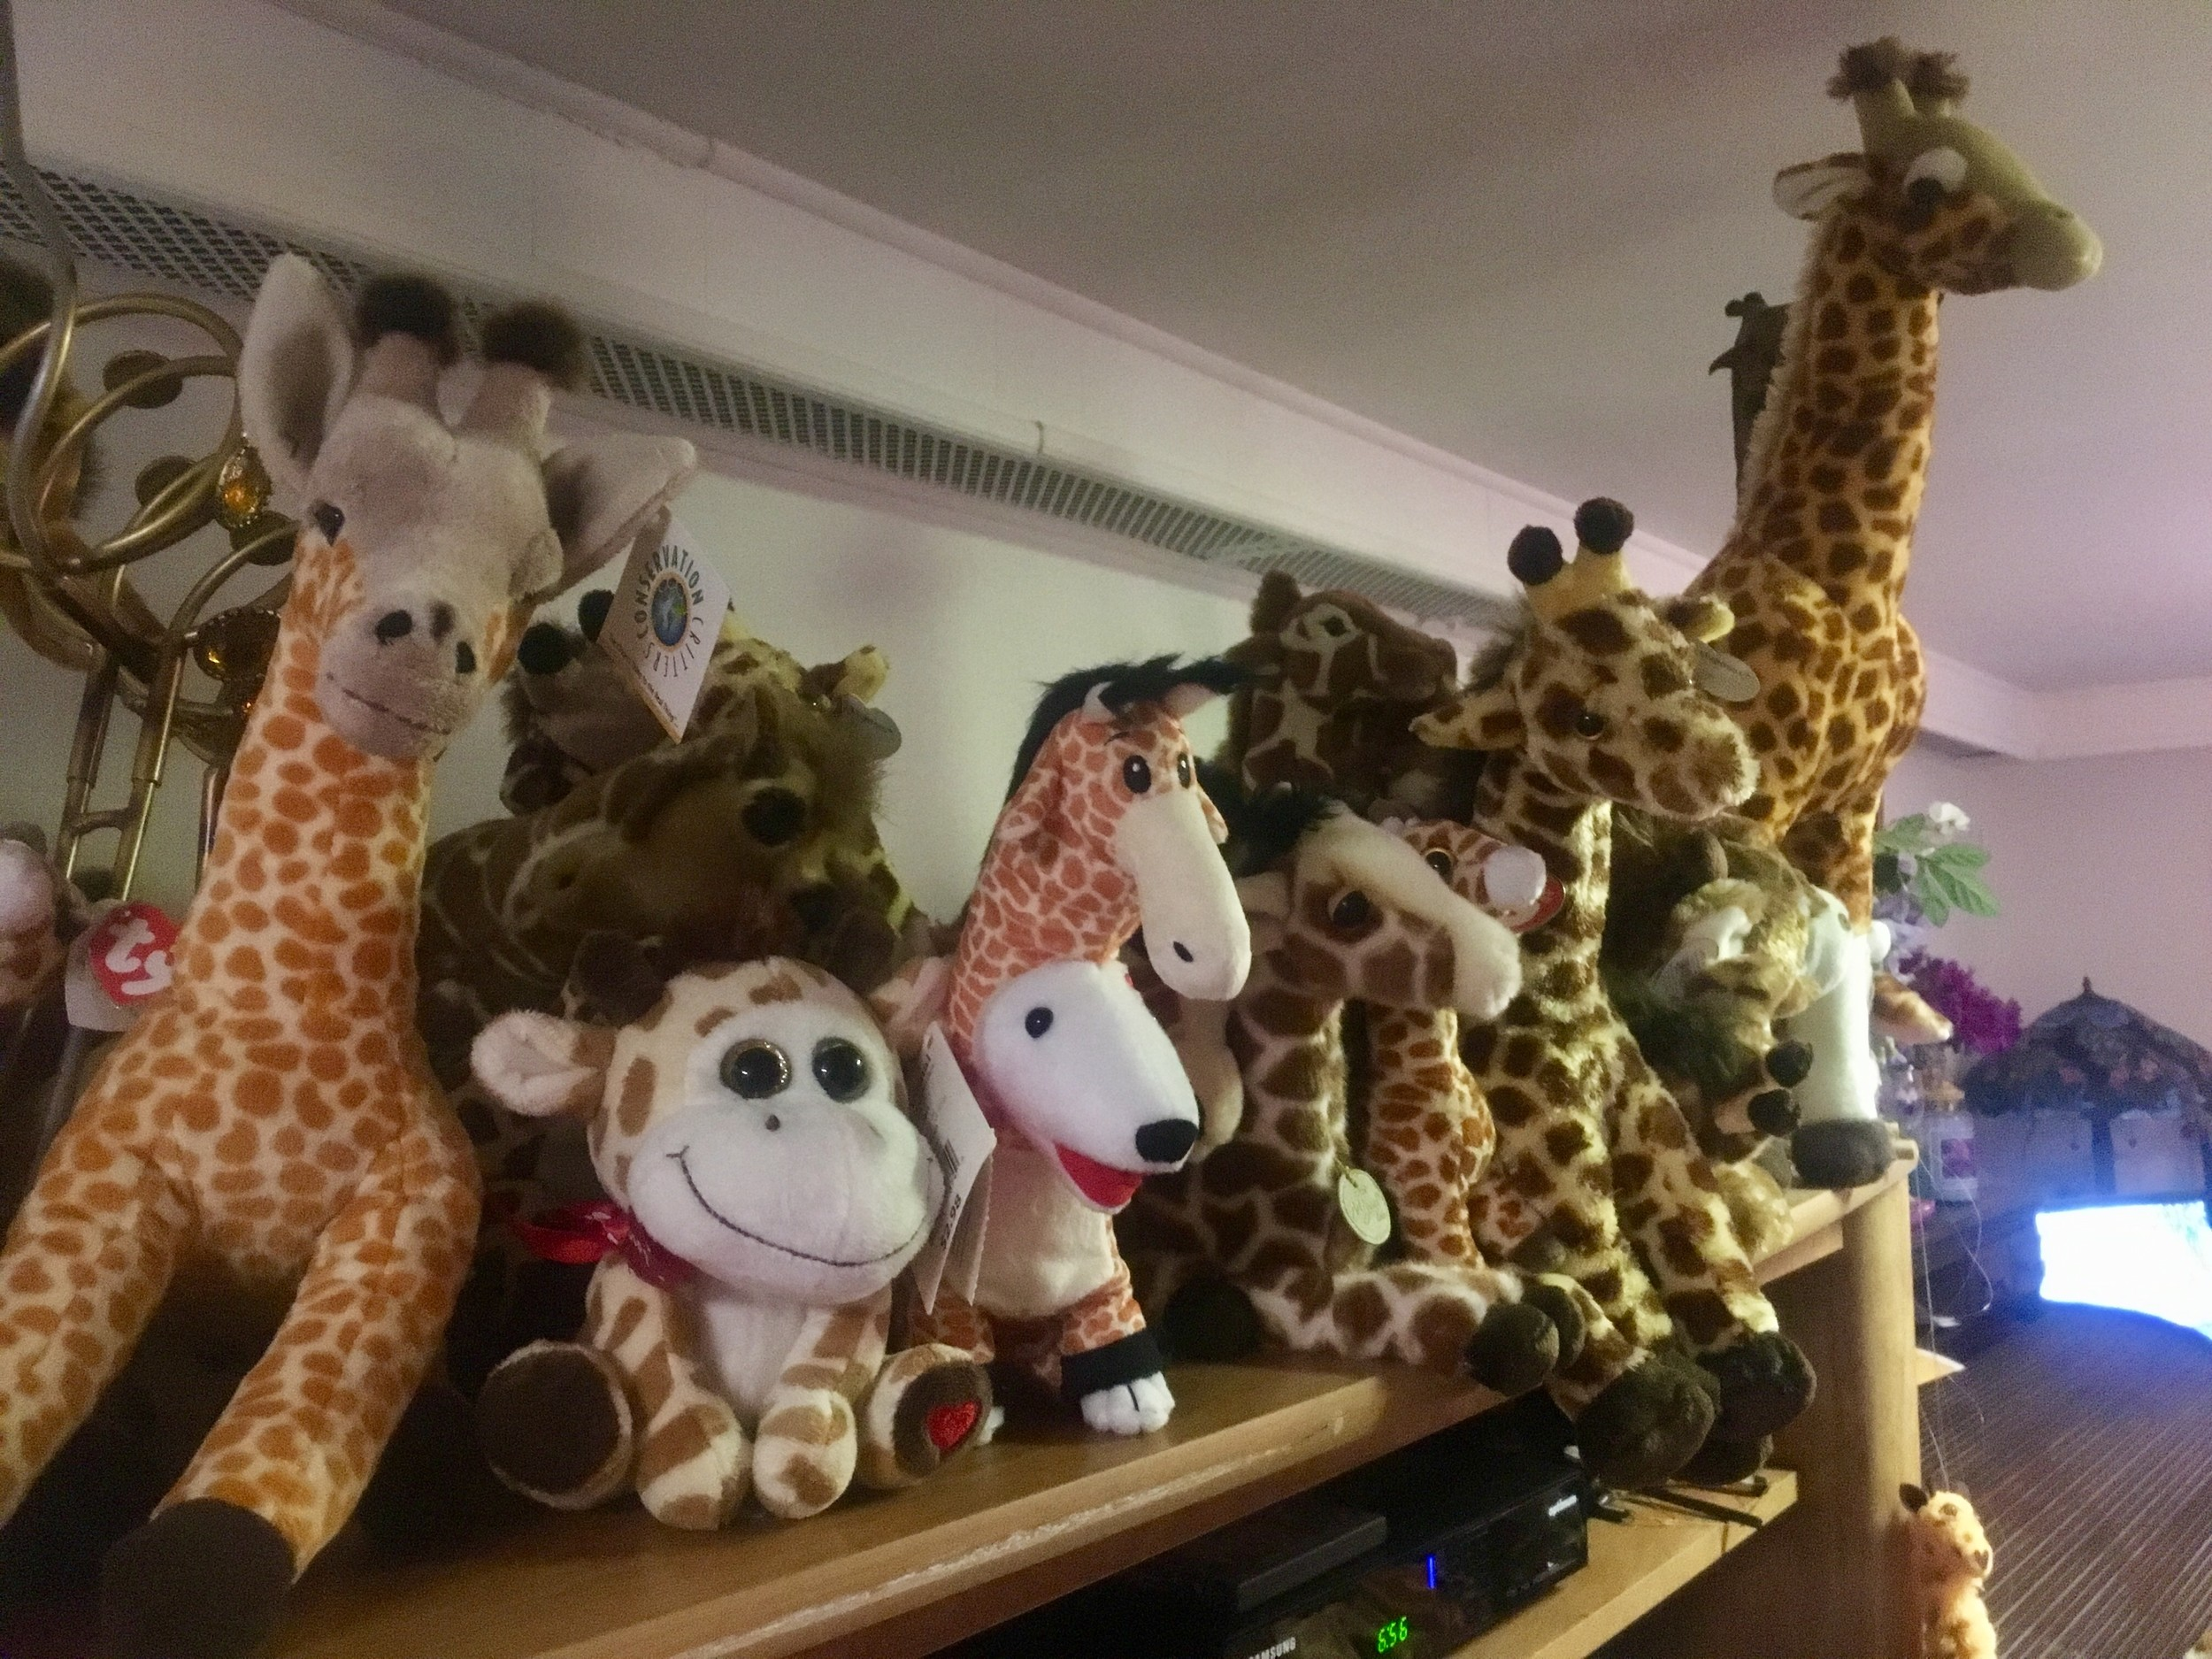 Giraffes are organized thematically on shelves throughout the Susman family home.